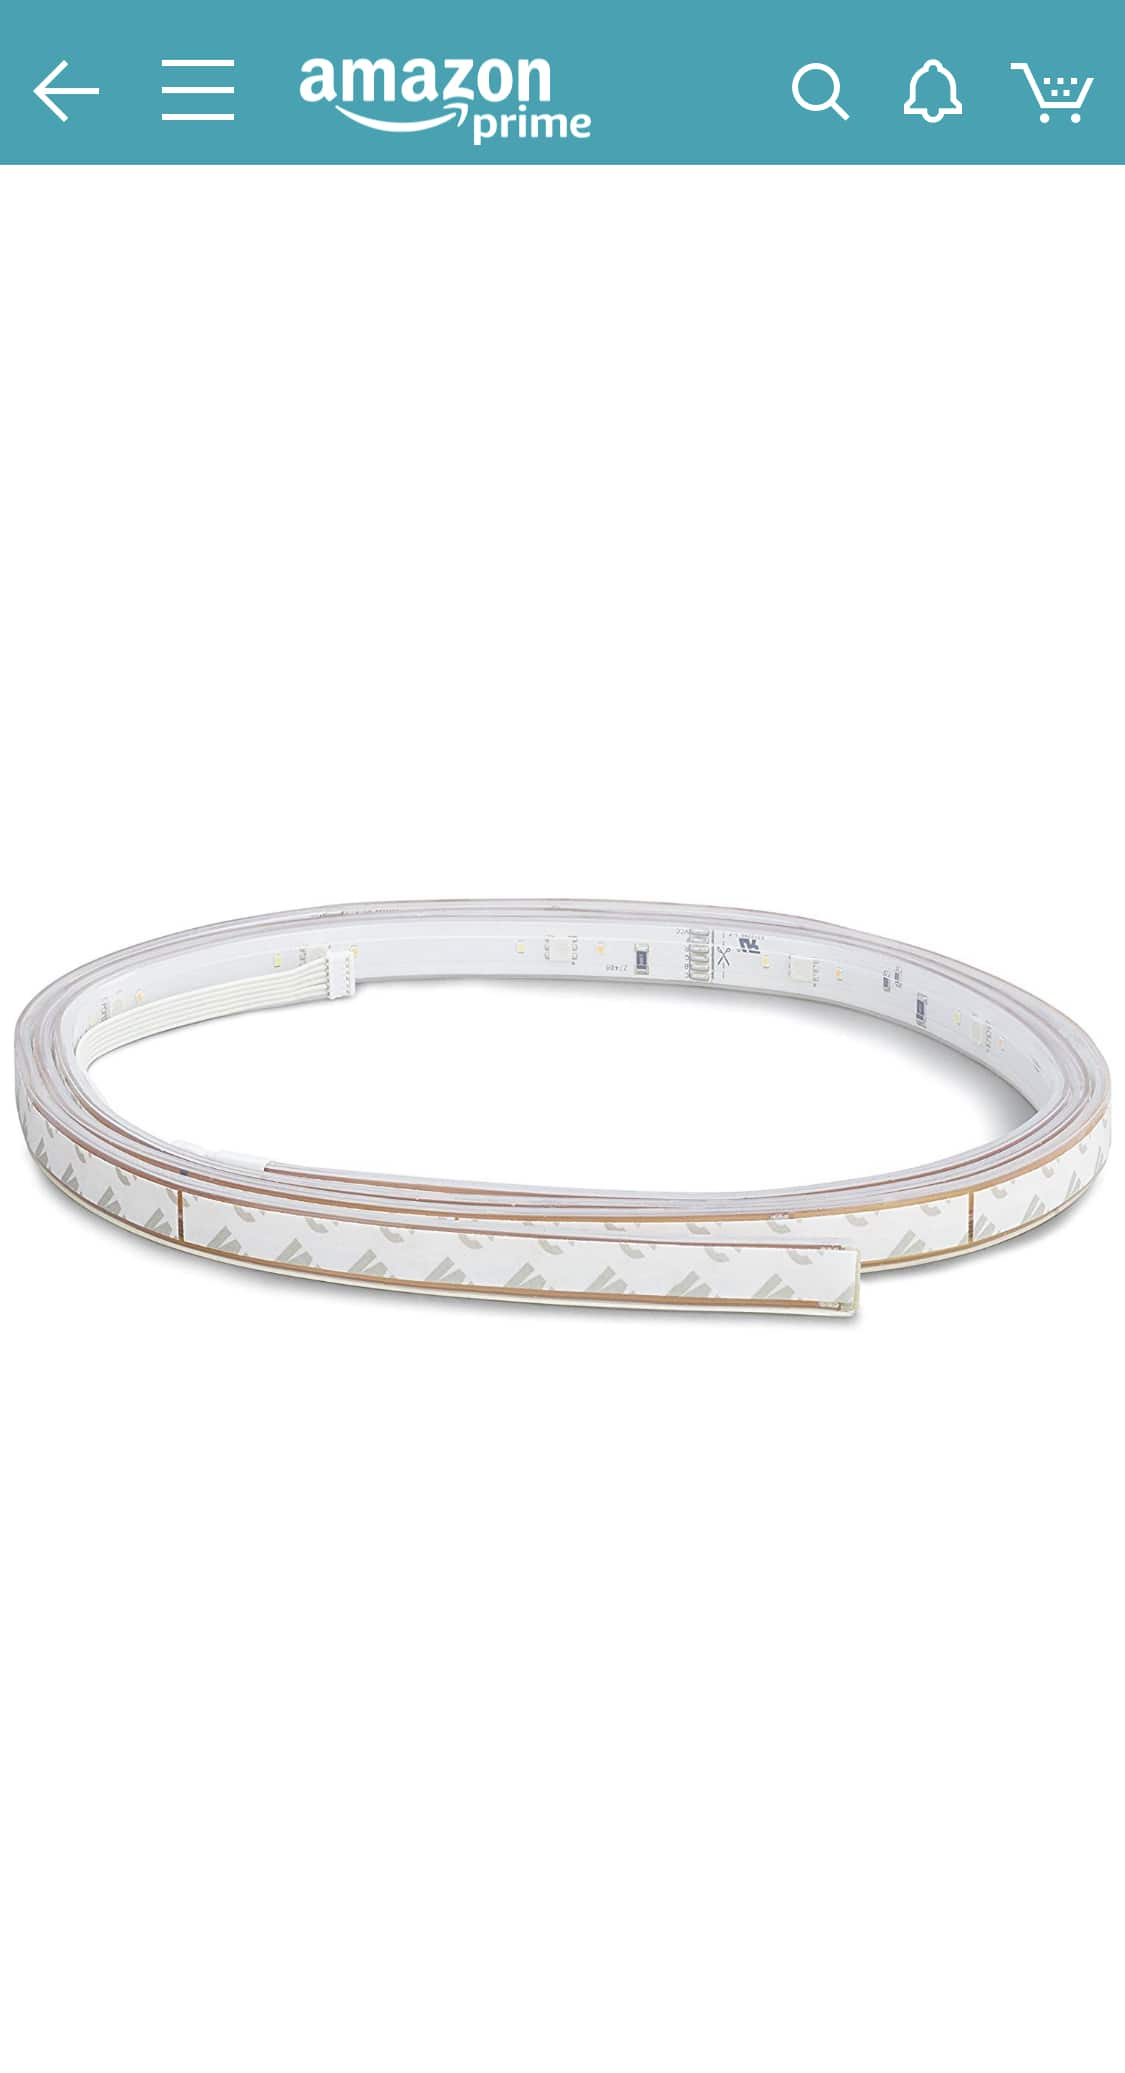 Philips Hue LightStrip Plus Dimmable LED Smart Light Extension (Requires Lightstrip Base & Hue Hub, Works with Alexa, HomeKit & Google Assistant) YMMV? $17.59